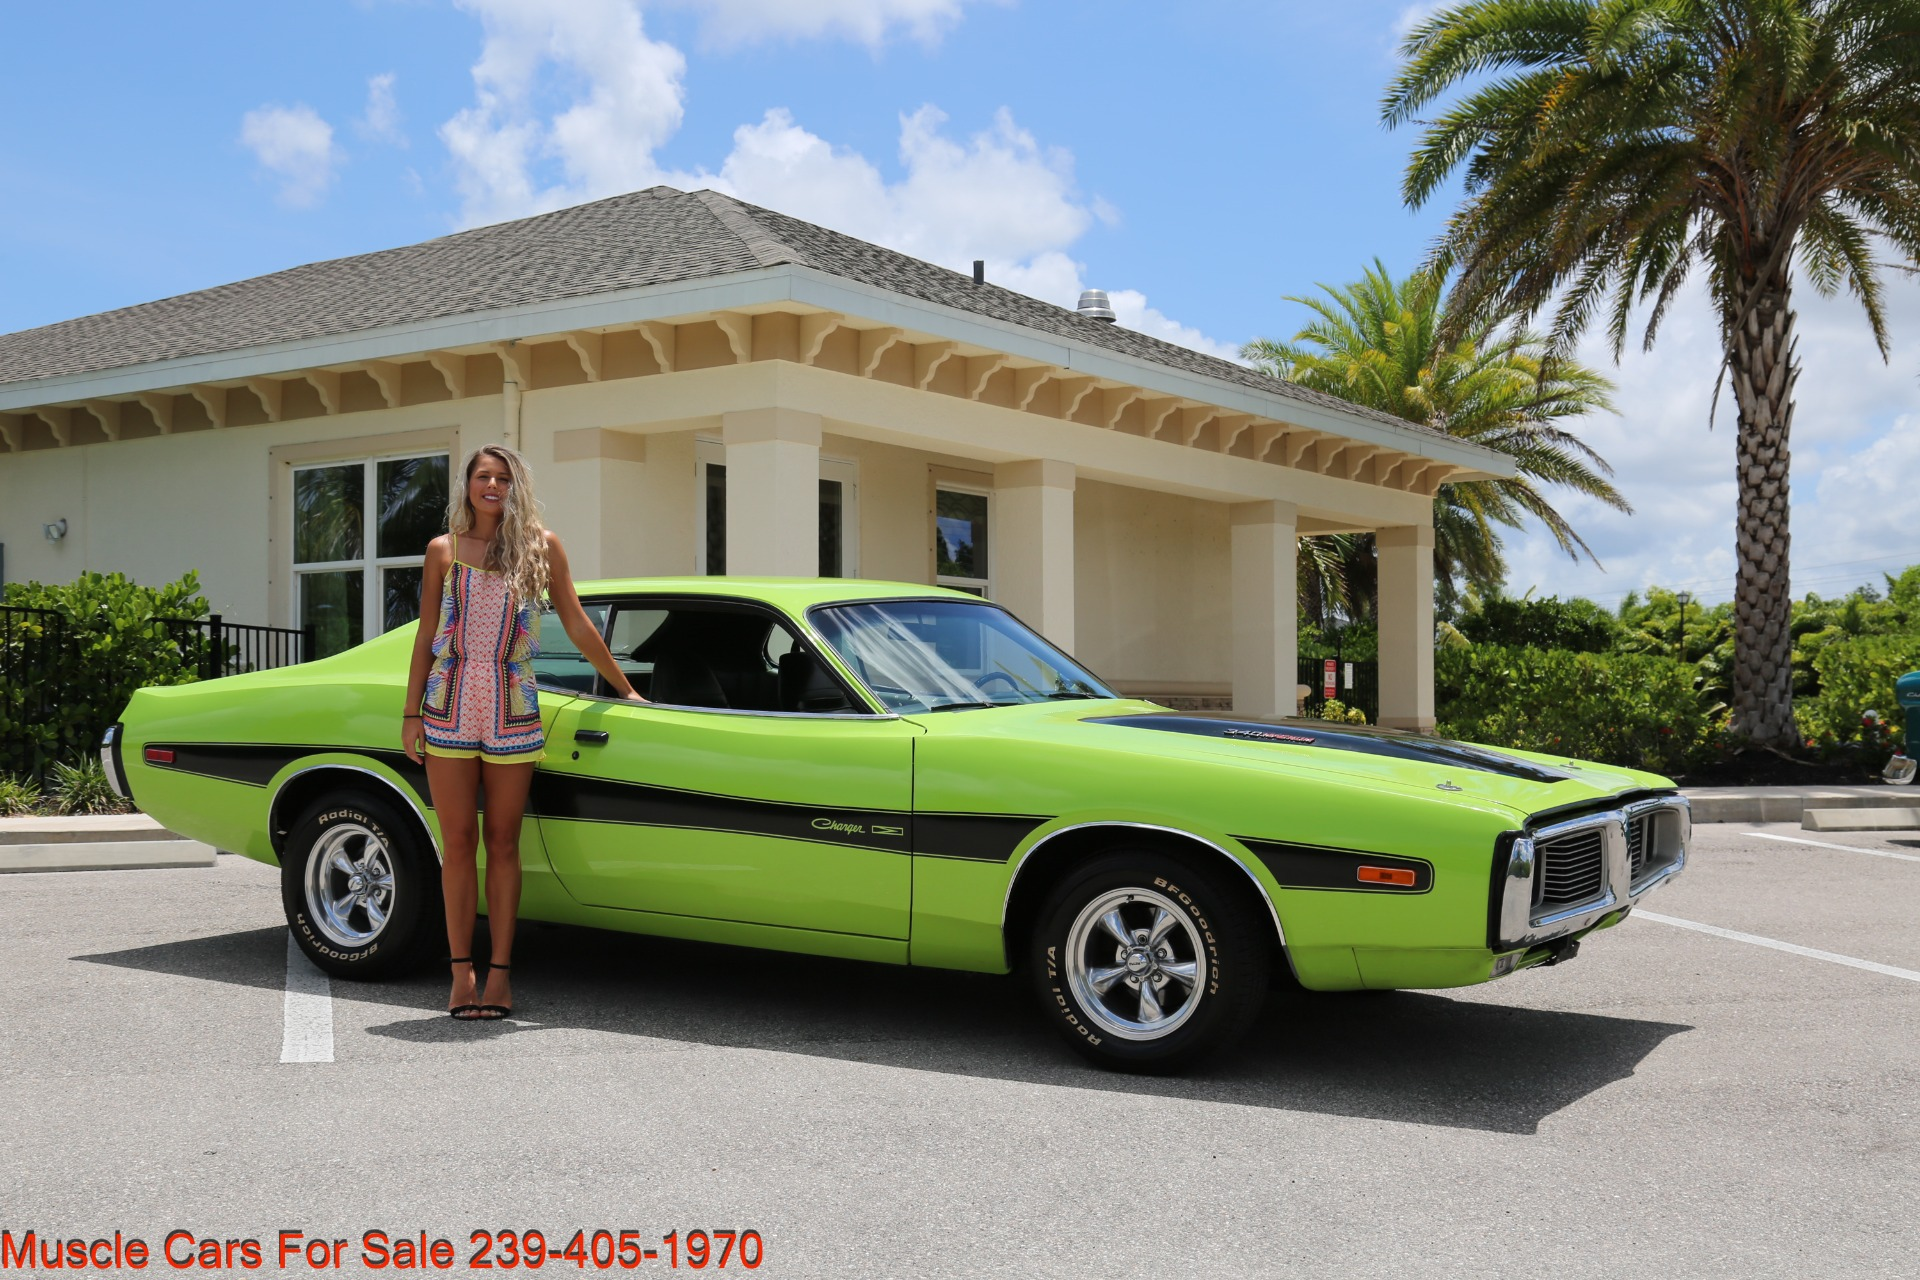 Used 1973 Dodge Charger 340 Auto Bucket Seats For Sale 25 000 Muscle Cars For Sale Inc Stock 2046